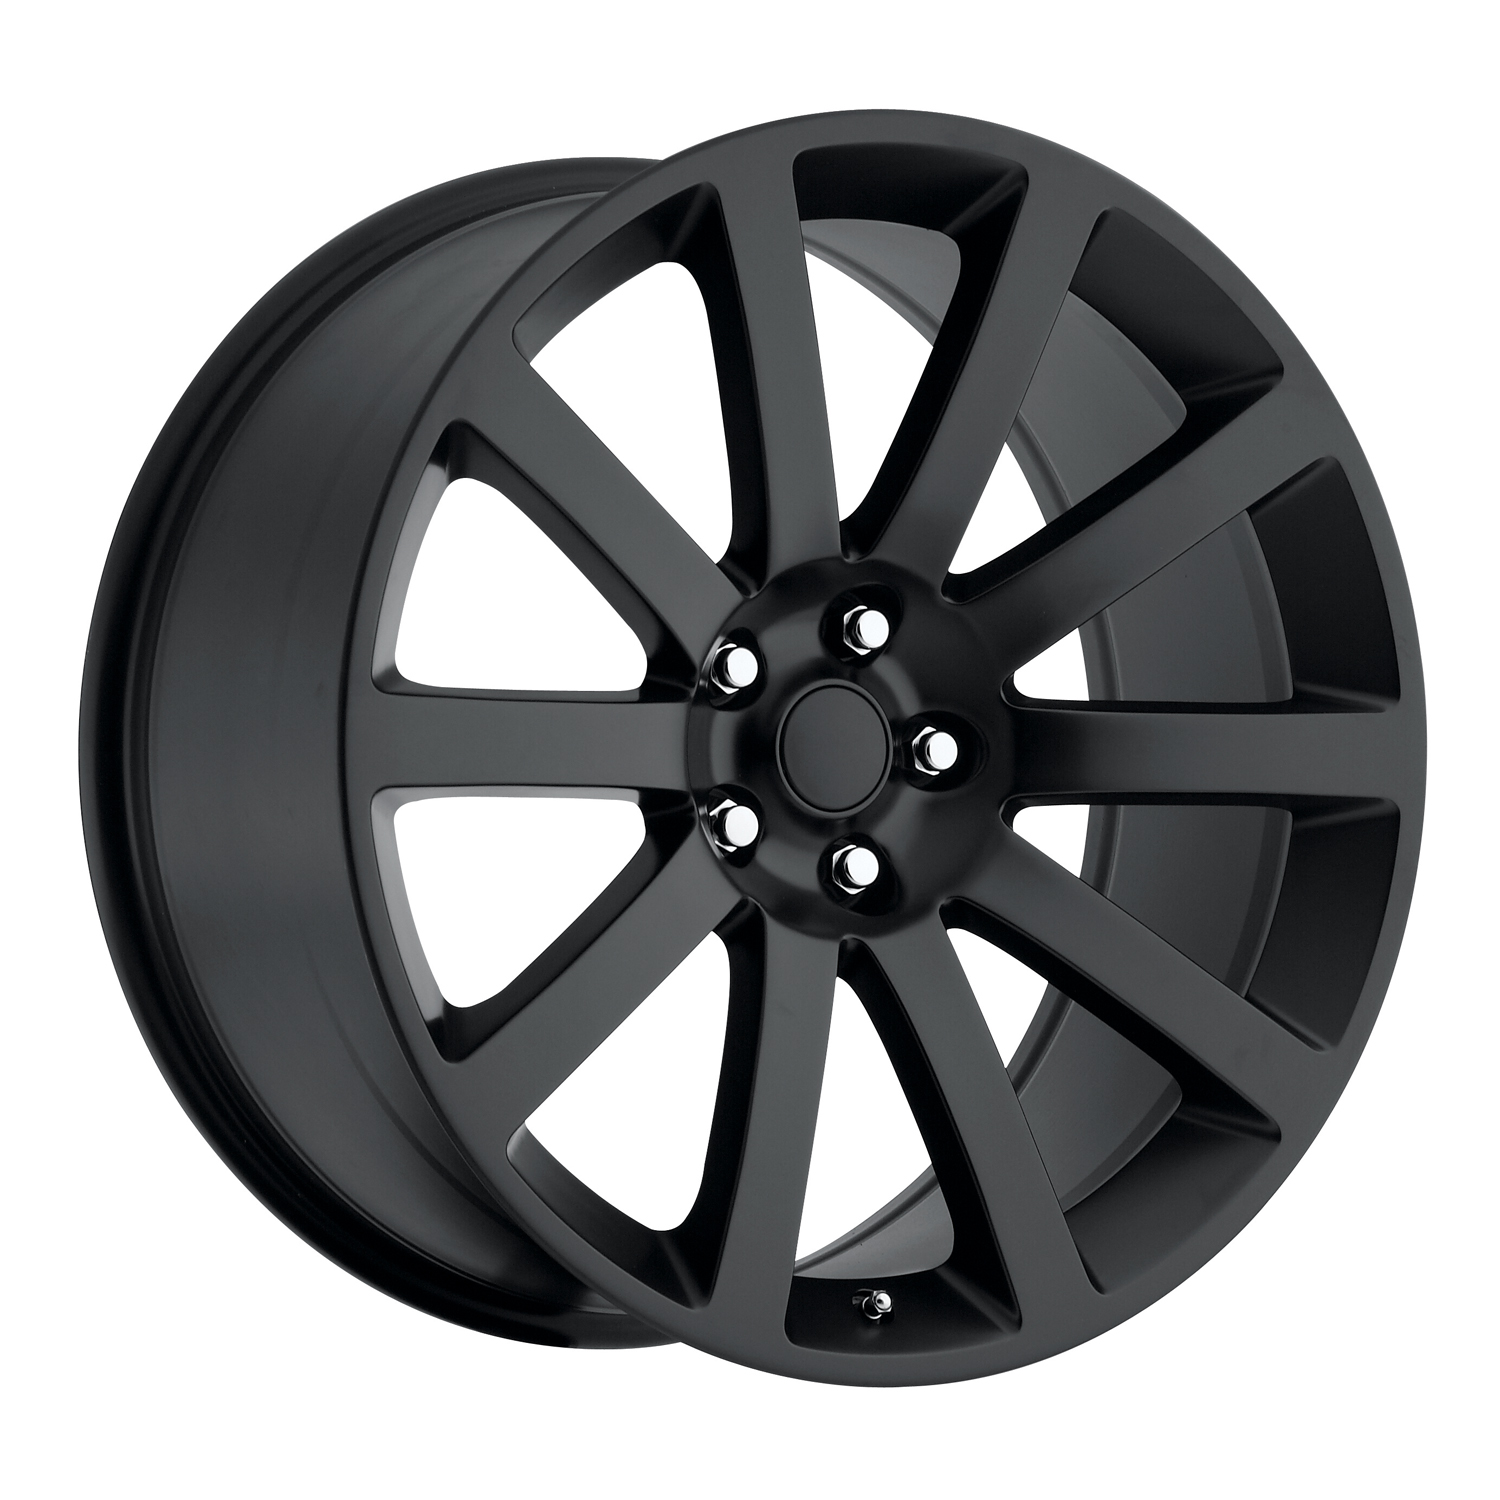 Chrysler 300C 2005-2010 22x9 5x115 +18 - SRT8 Style Wheel - Gloss Black With Cap